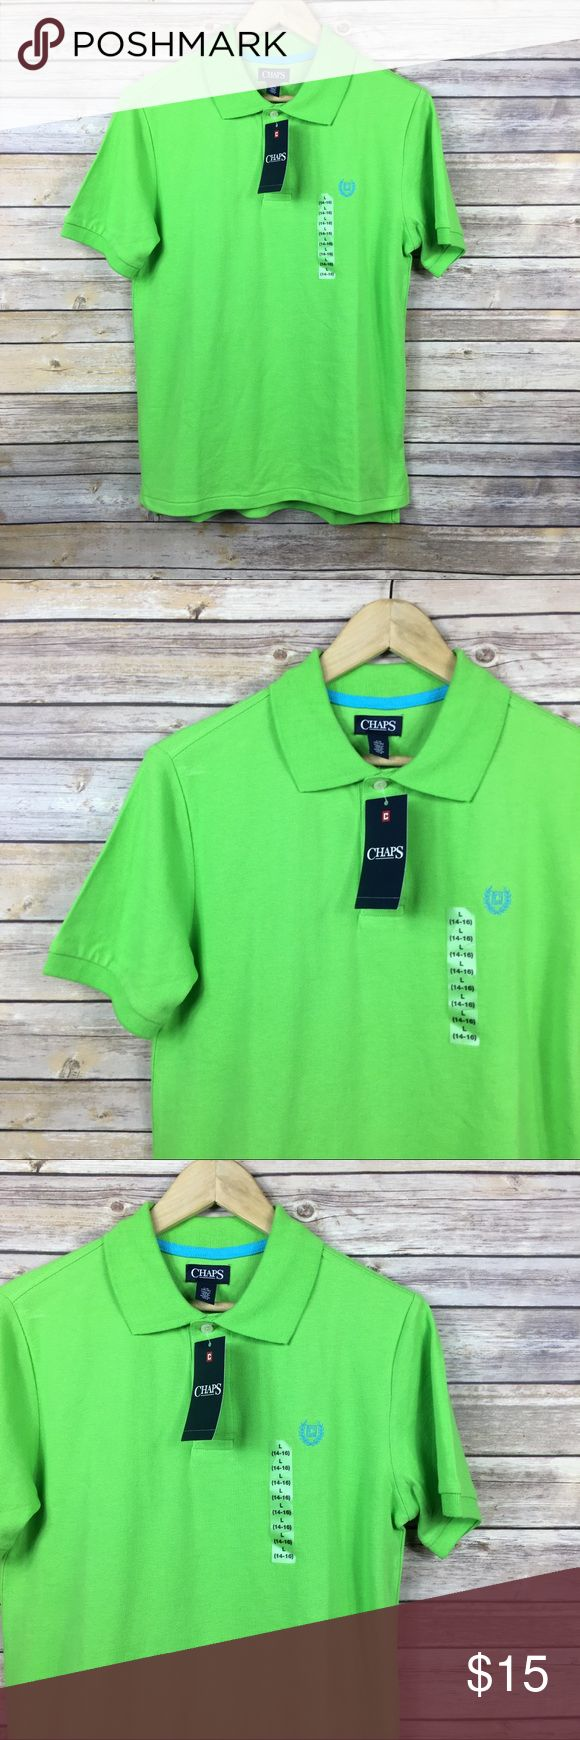 Chaps Boys Embroidered Polo Shirt Size L NWT Chaps Boys Green Embroidered Logo  Polo Shirt Size L (14-16)  New with Tags 100% Cotton  Armpit to armpit 19 in Armpit to end of sleeve 4 in Shoulder to hem 27 in Thanks for visiting! Chaps Shirts & Tops Polos